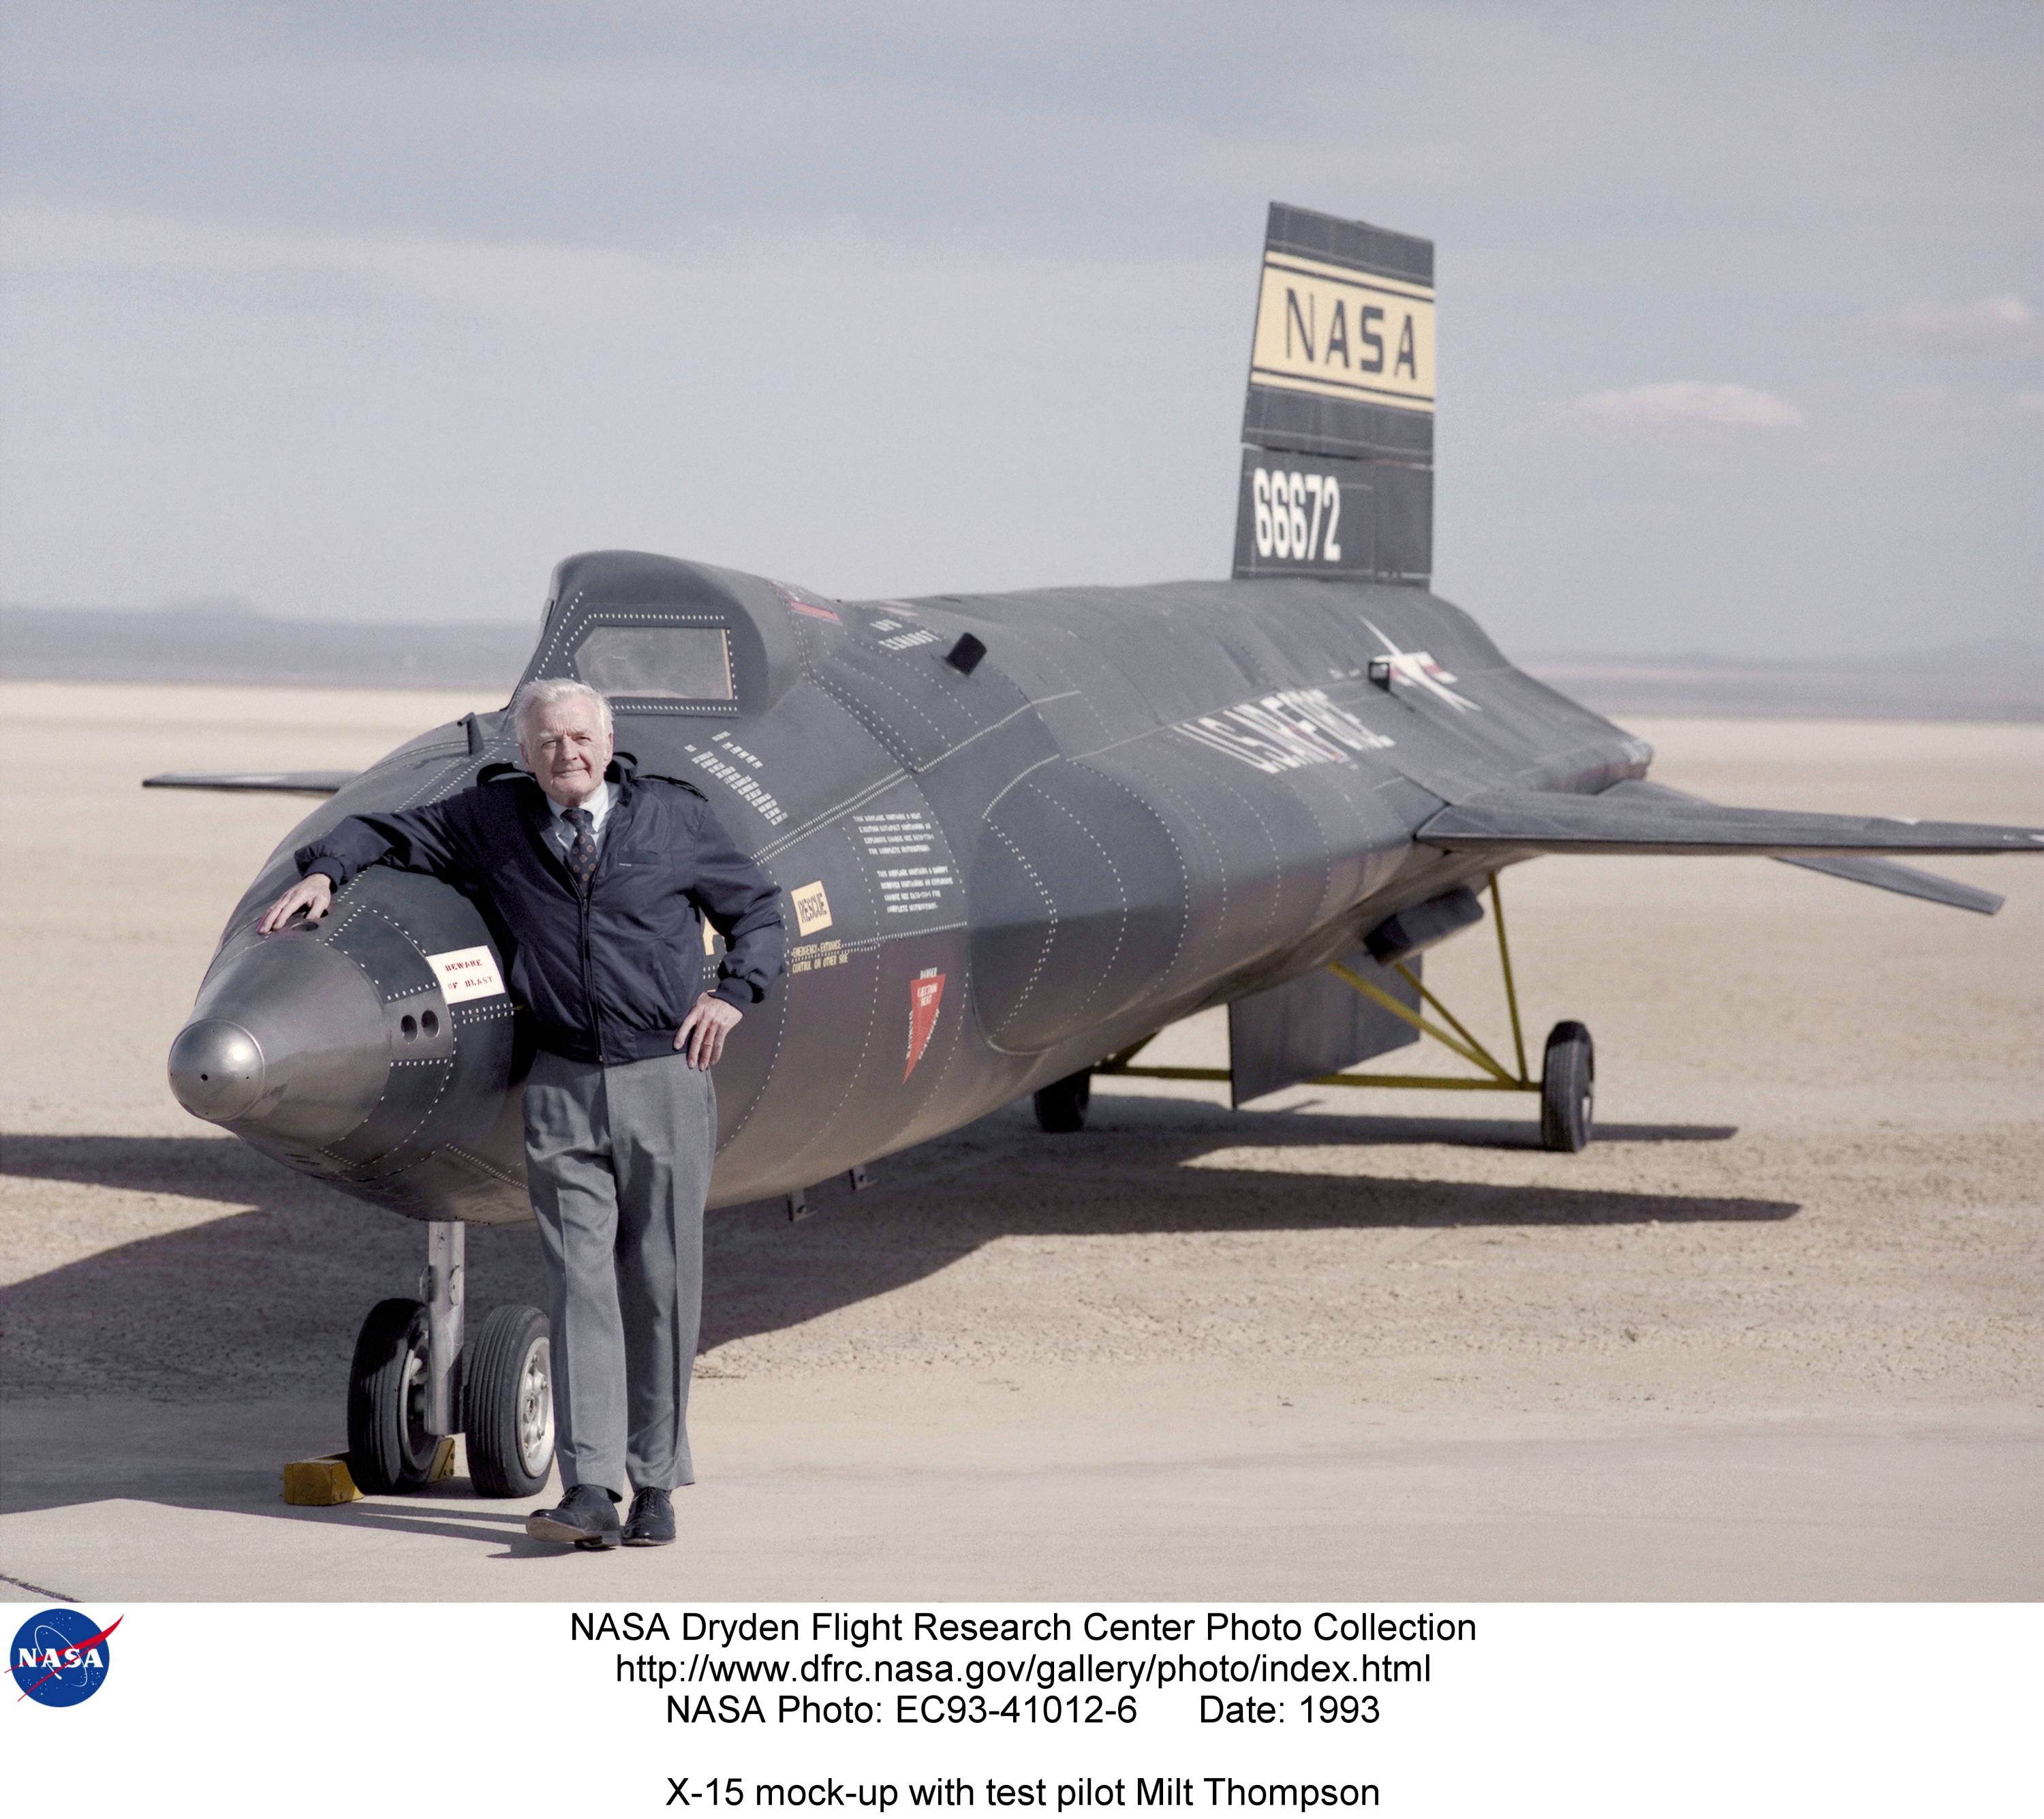 X-15 EC93-41012-6: X-15 mock-up with test pilot Milt Thompson